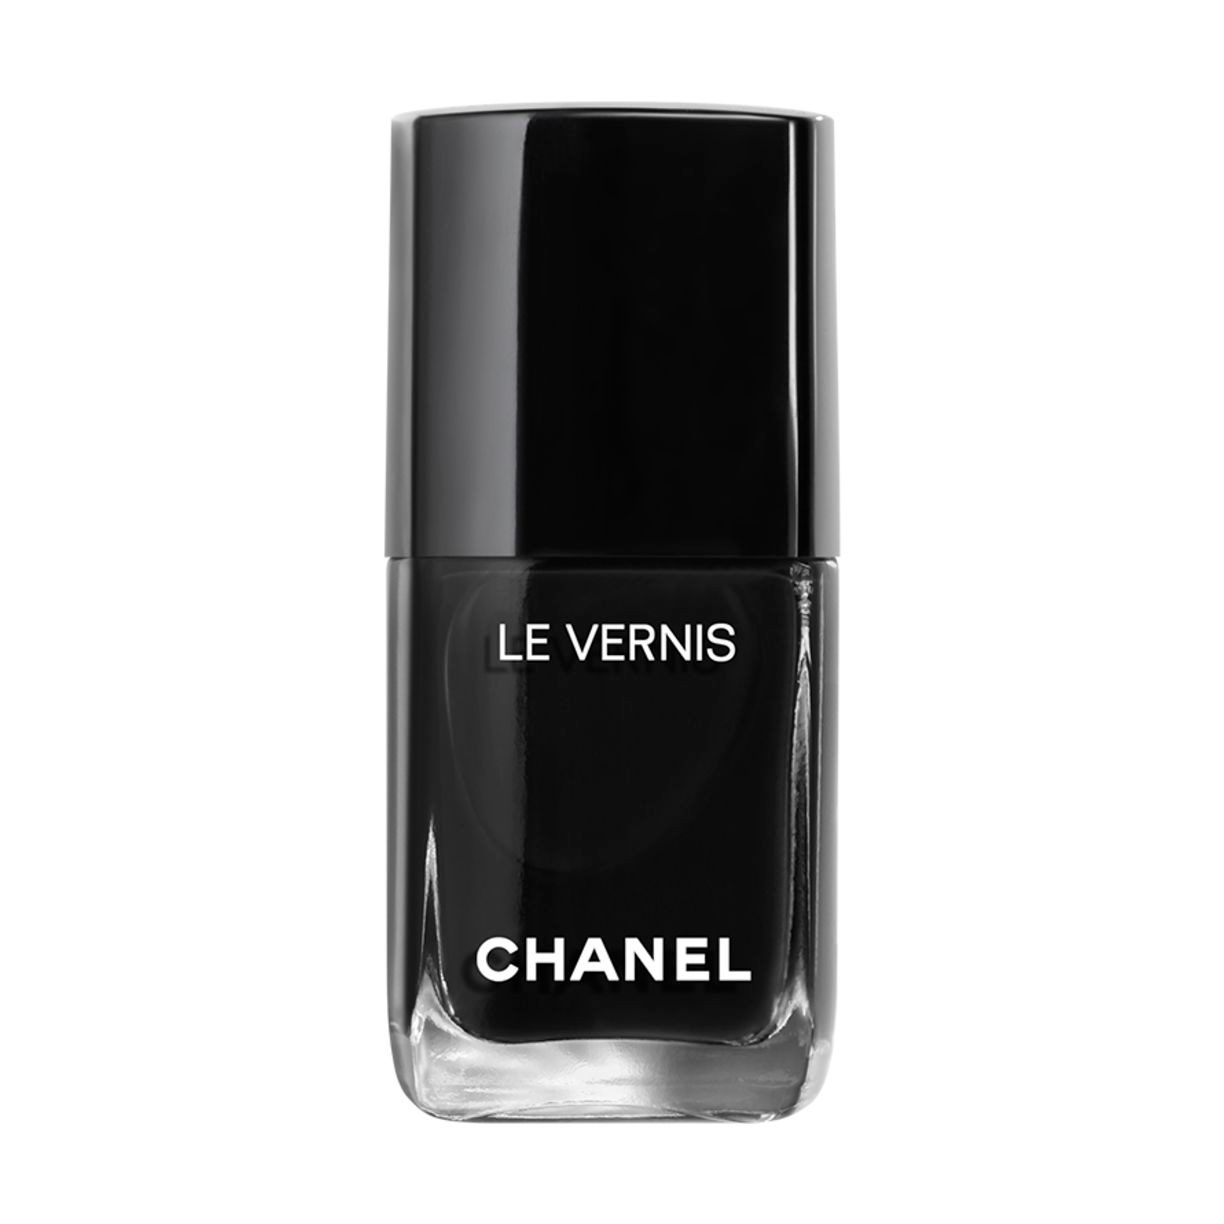 LE VERNIS LE VERNIS LIMITED EDITION. LONGWEAR NAIL COLOUR. 713 - PURE BLACK